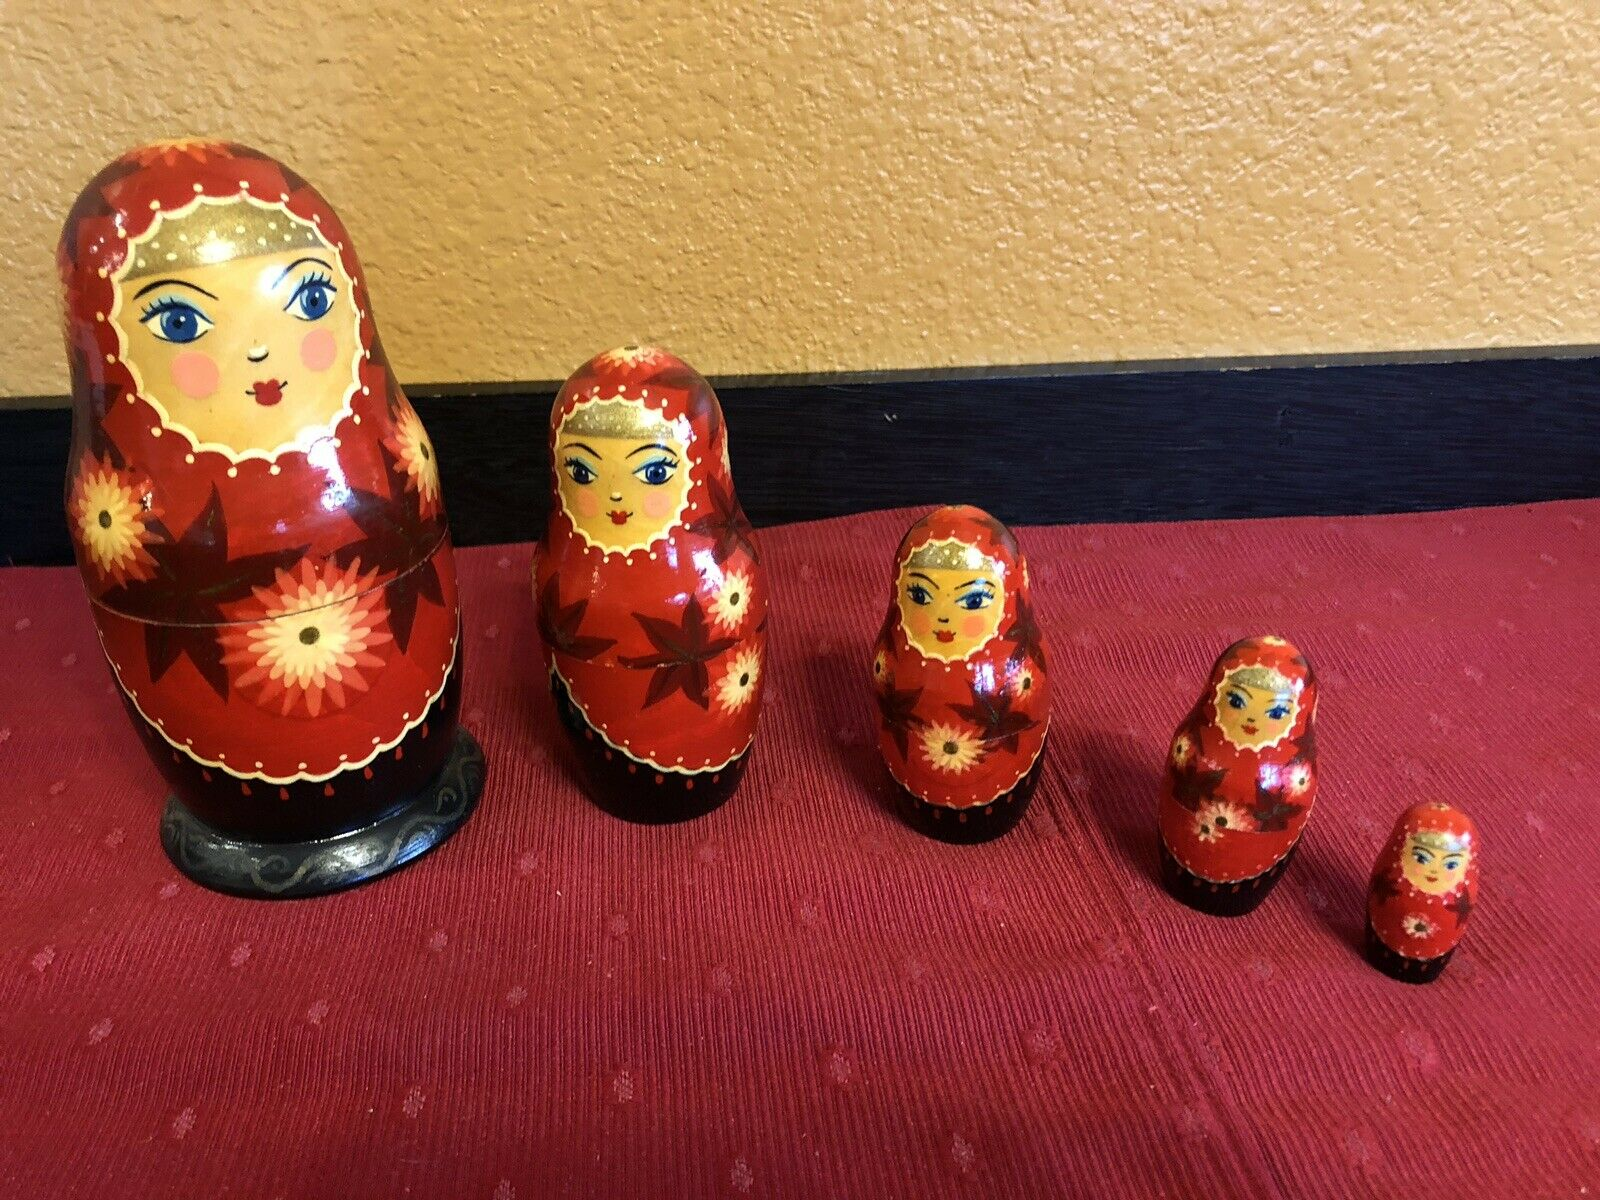 Vintage Russian Soviet Union Nesting Dolls  rosso  Complete Set of 5.